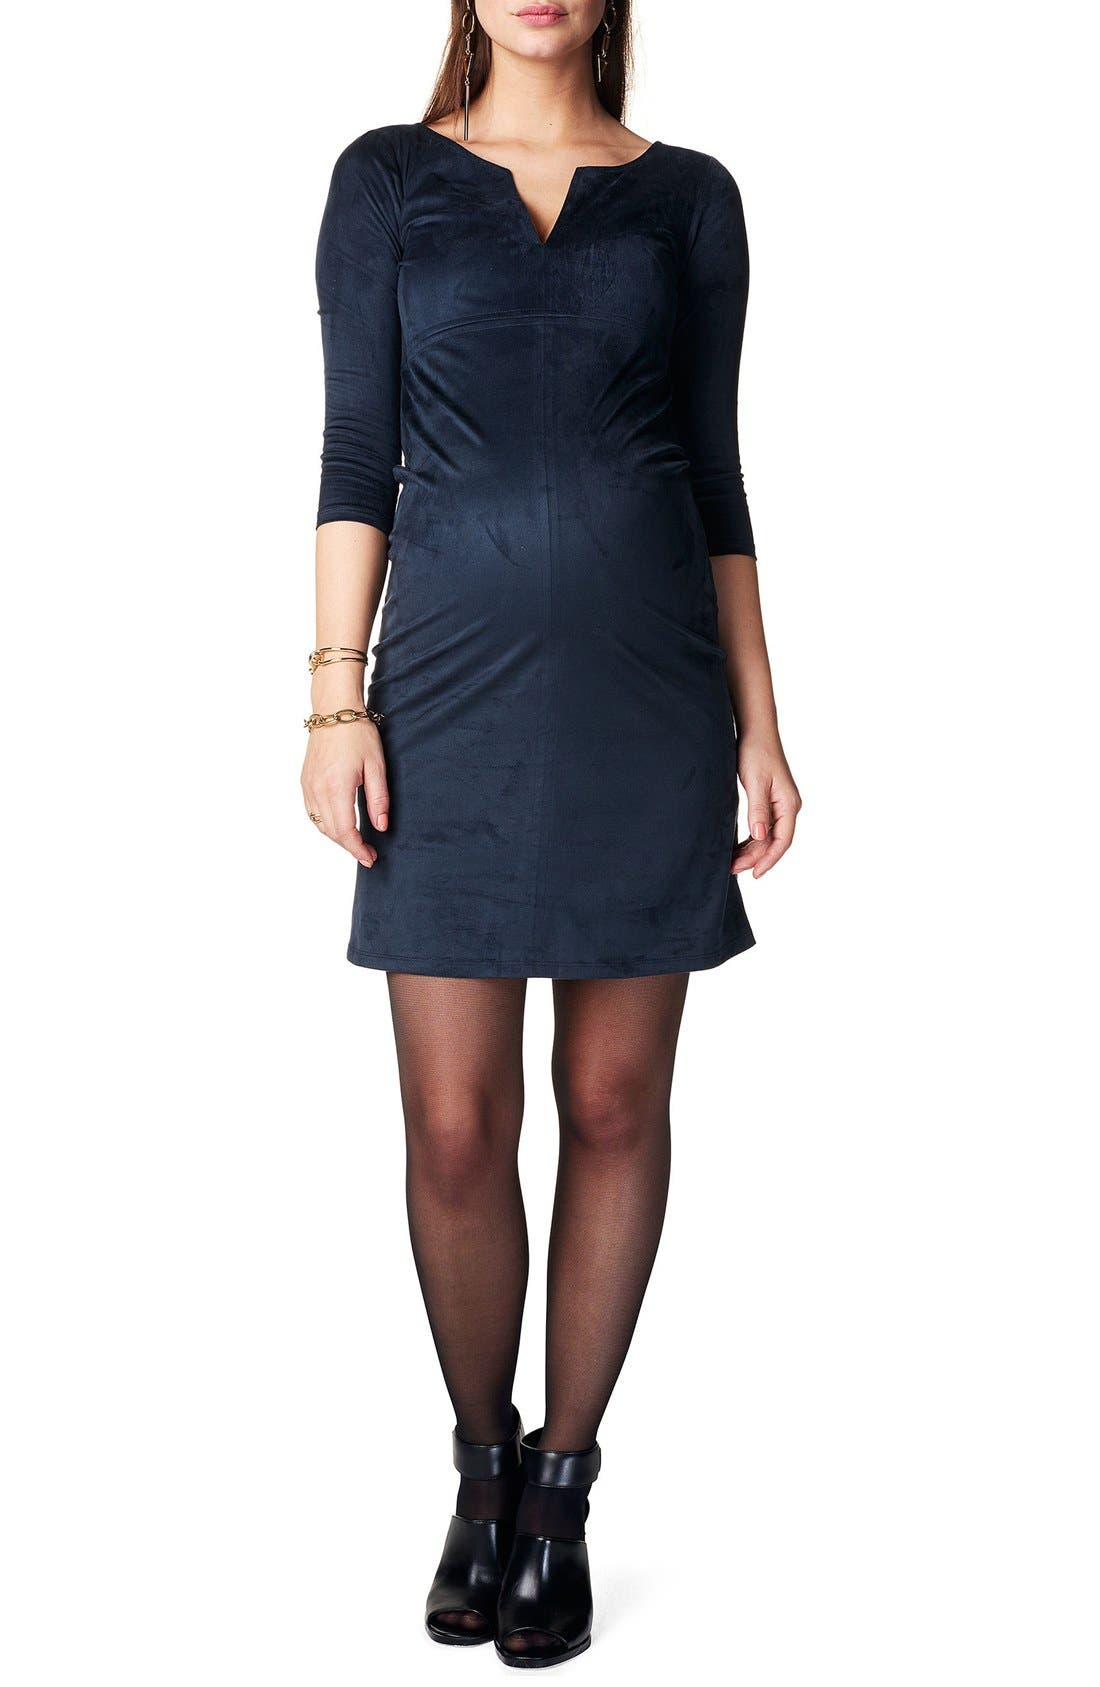 Noppies 'Silje' Sueded Maternity Dress